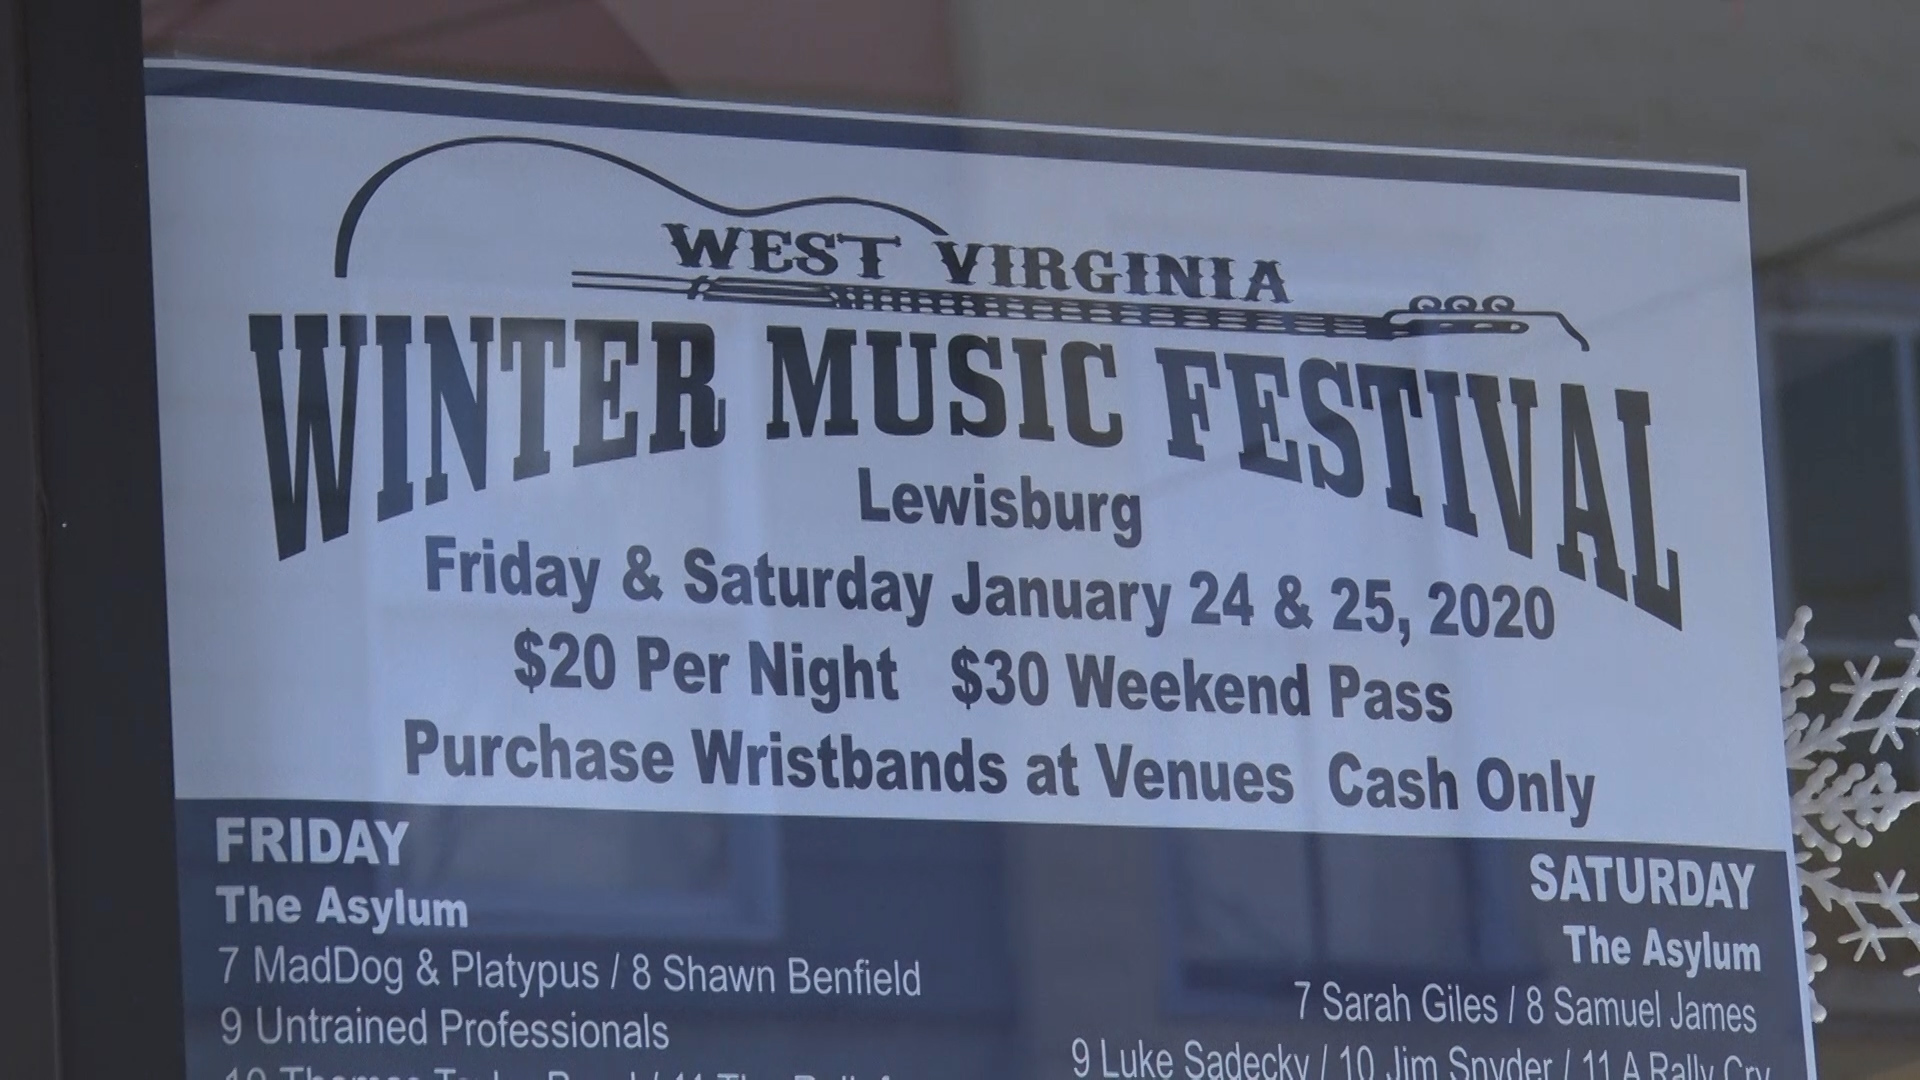 Halloween Events In Lewisburg Wv Oct 20, 2020 West Virginia Winter Music Festival returns to Lewisburg | WVNS